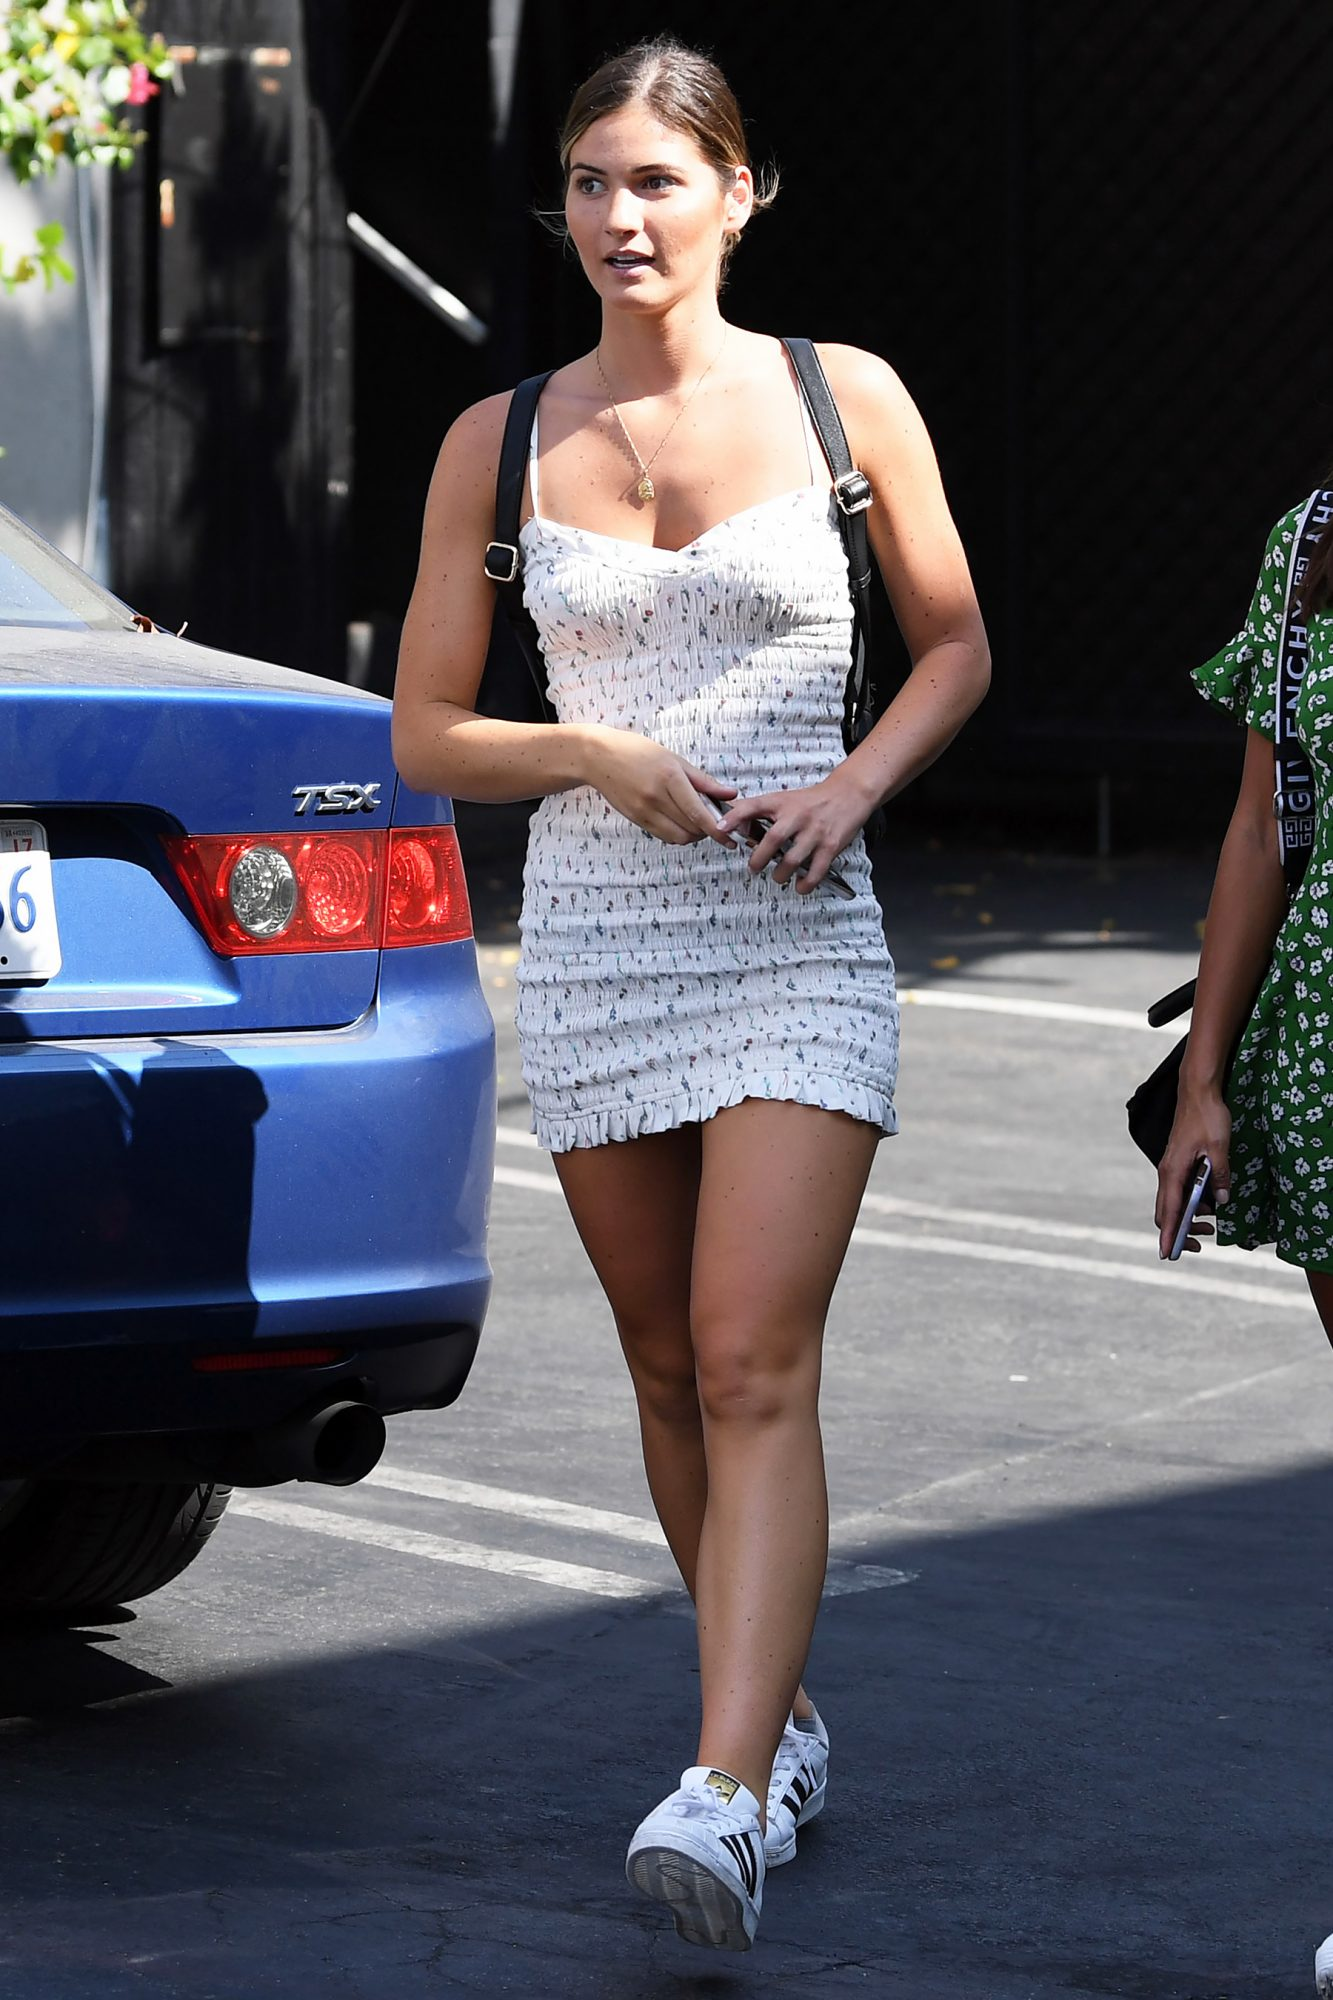 Shauna Sexton steps out for lunch in a summer dress with another palyboy model